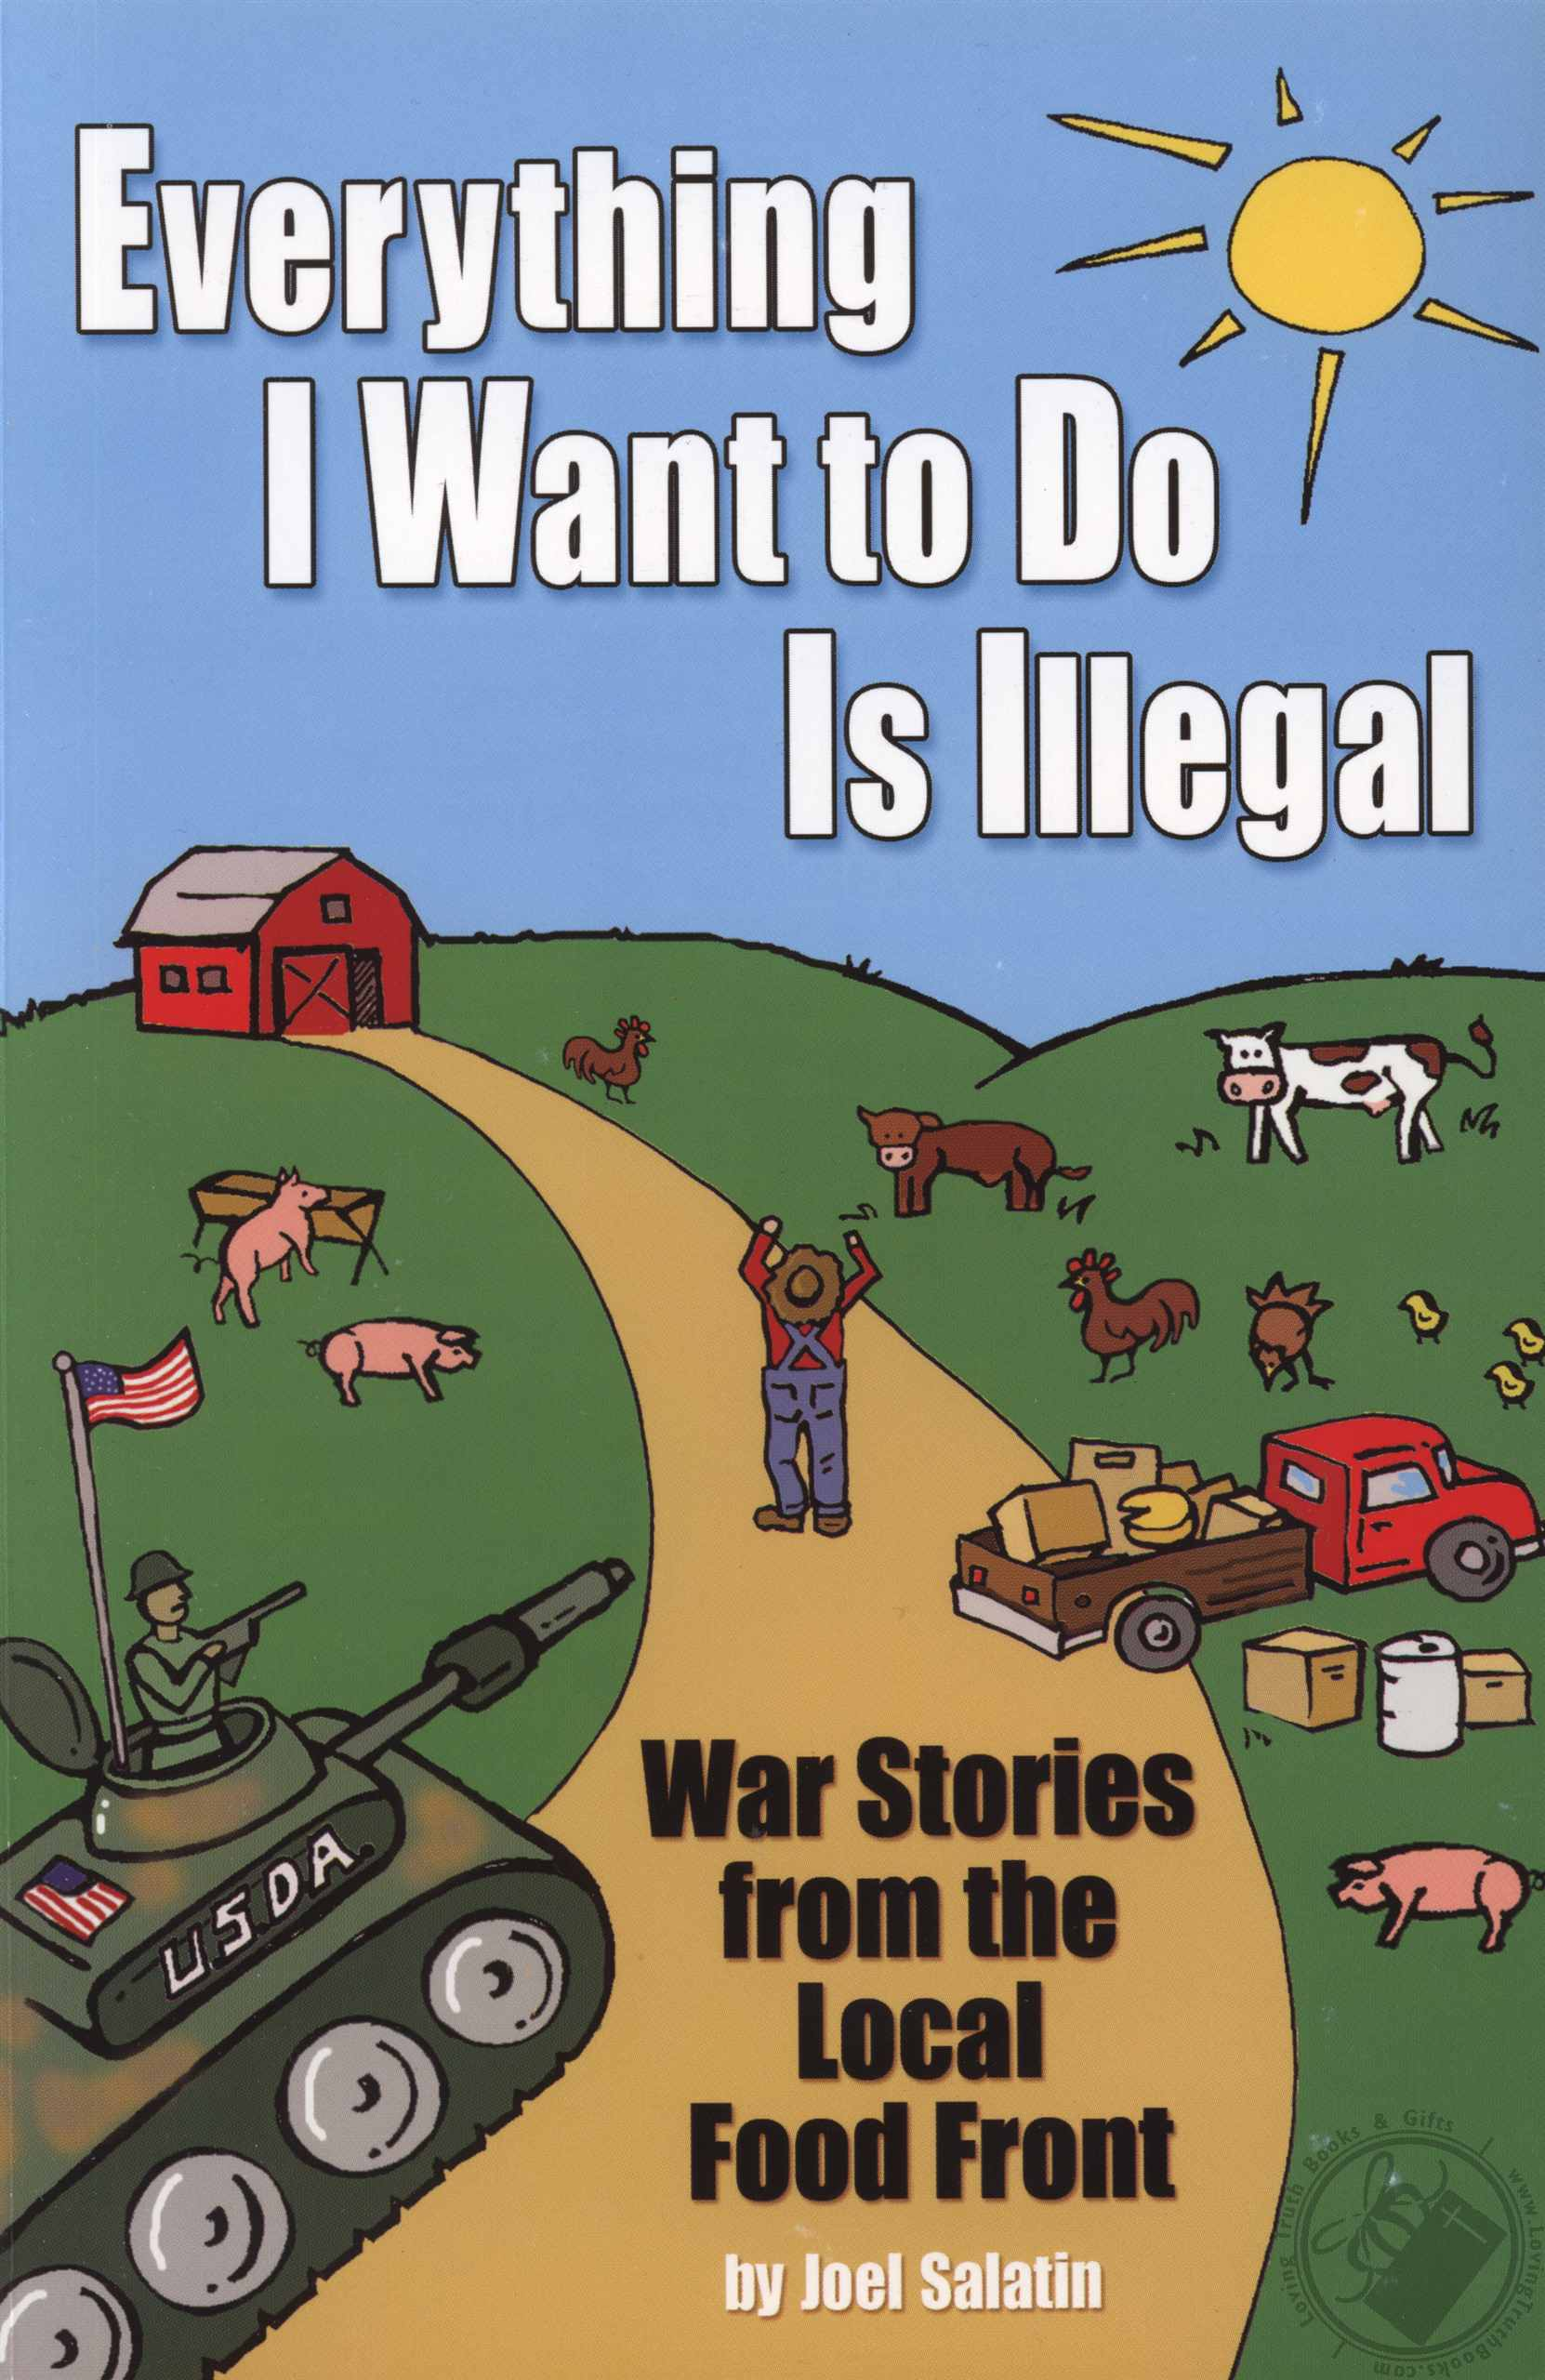 'Everything I Want To Do Is Illegal' by Joel Salatin